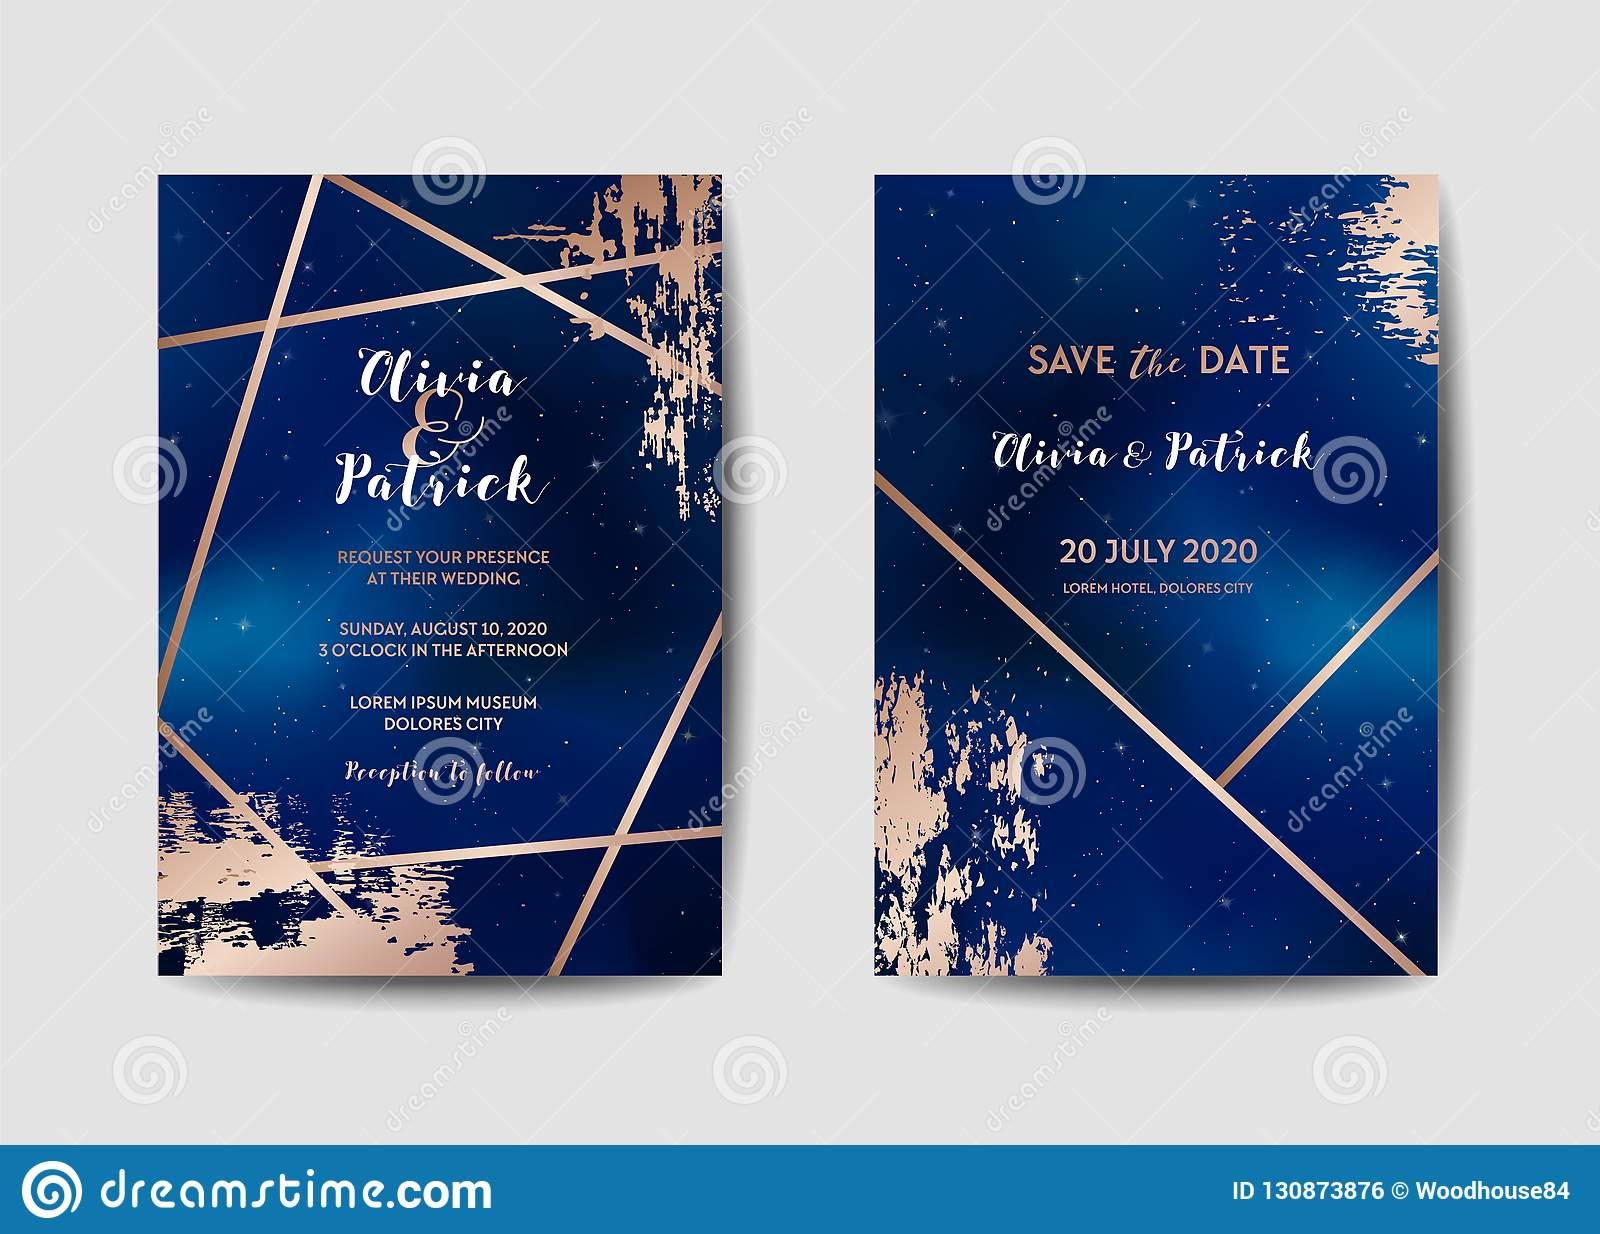 Starry Night Sky Trendy Wedding Invitation Card Set, Save The Date  Celestial Template Of Galaxy, Space, Stars Stock Vector - Illustration of  love, announcement: 130873876